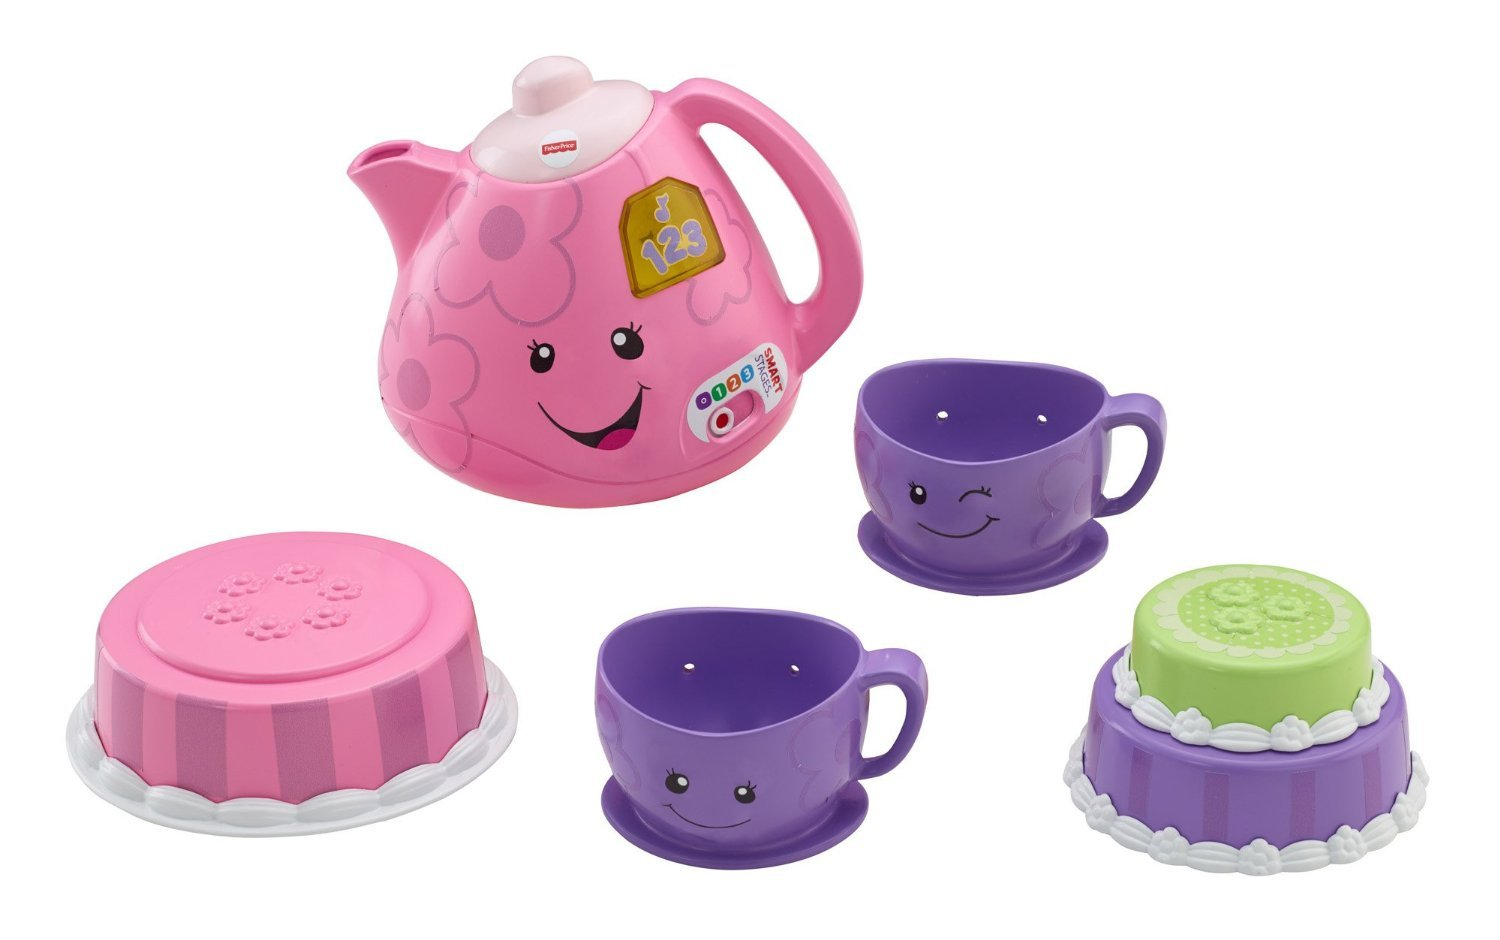 Laugh & Learn Tea Set | 887961417906 | Item | Barnes & Noble®